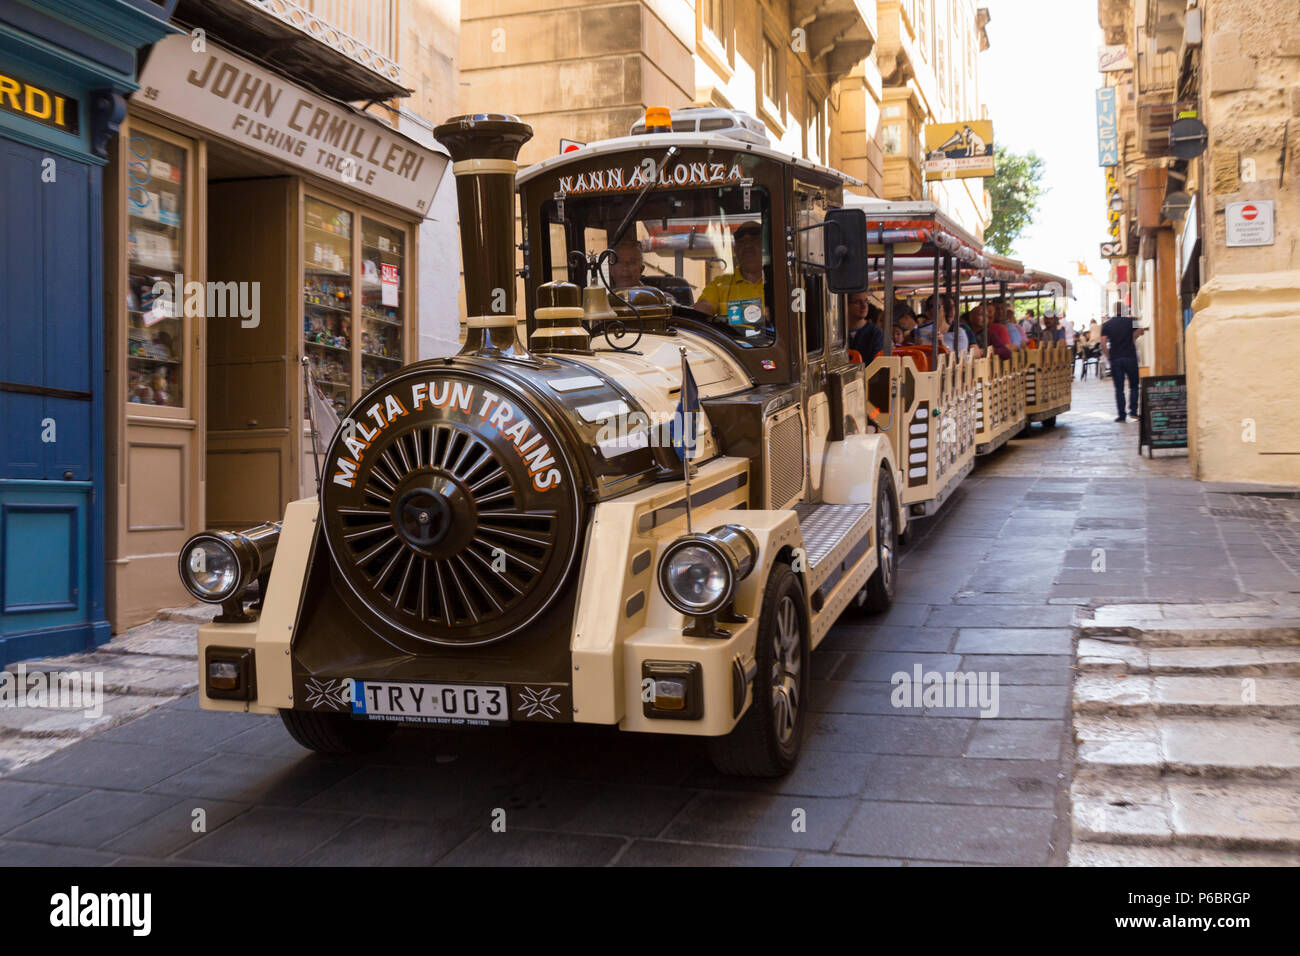 Tourist sightseeing train / trains running in the narrow streets and roads of the historic old city centre of Valletta, Malta. Island of Malta. (91) - Stock Image